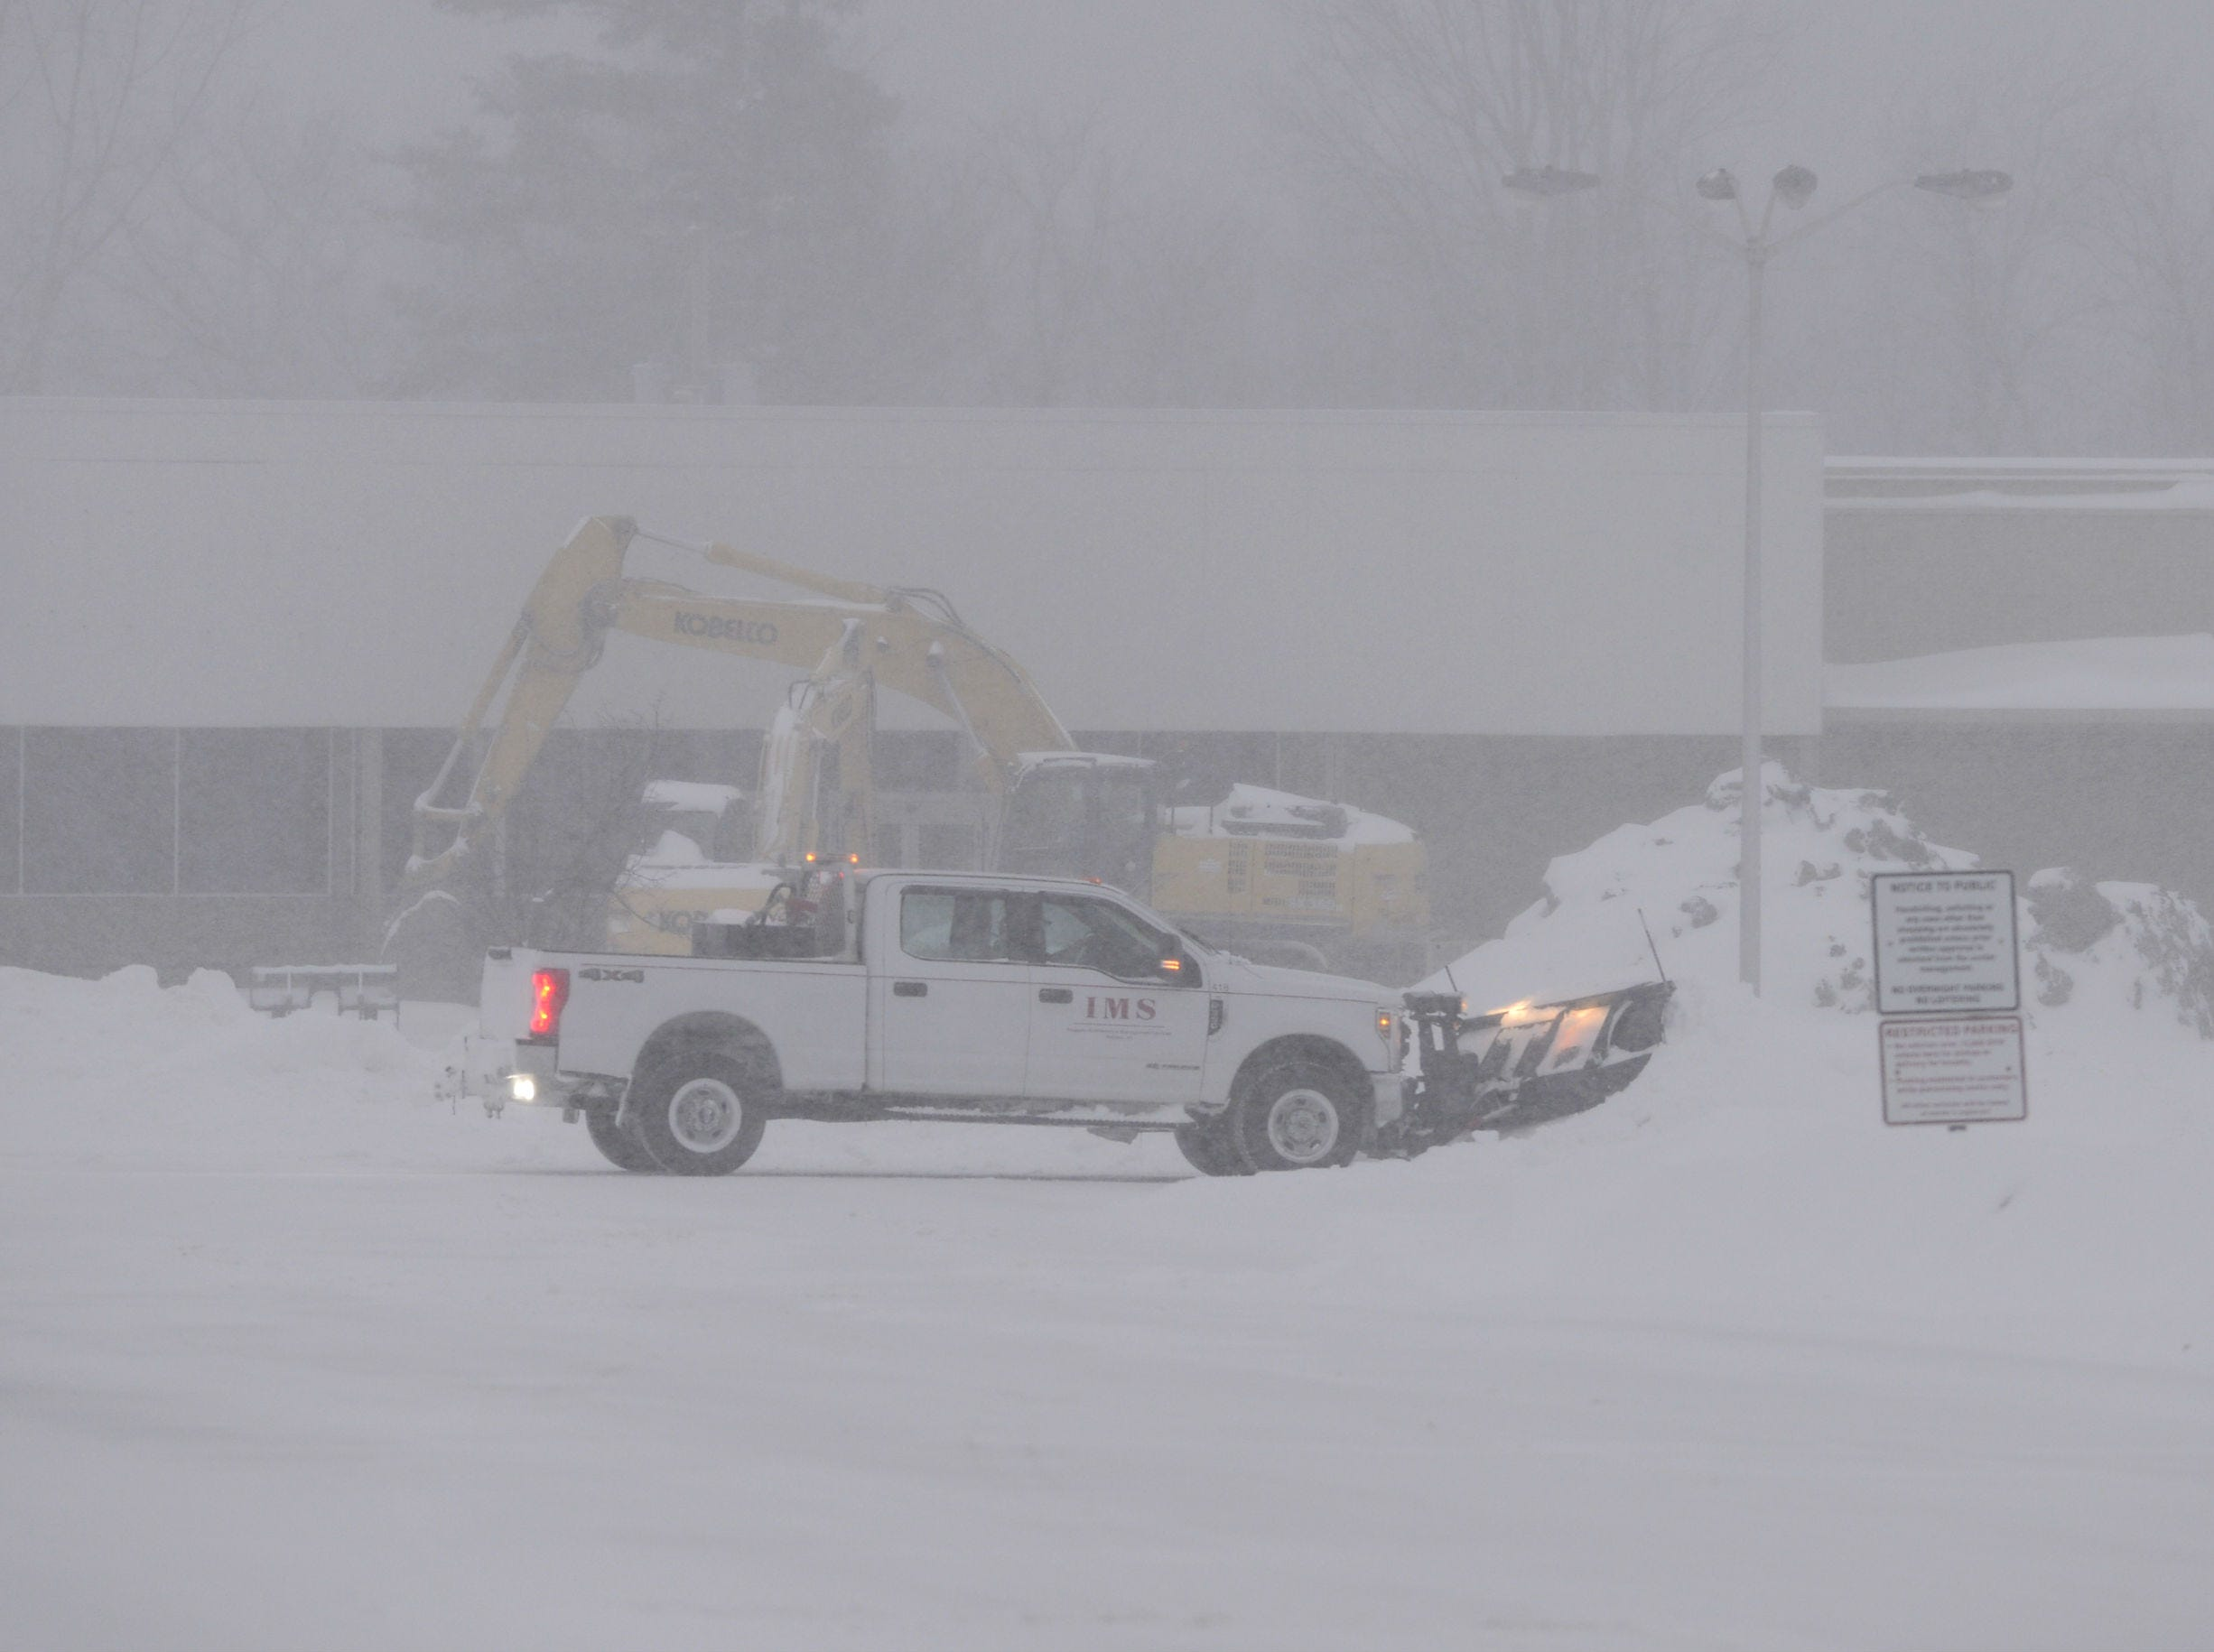 A snowplow works to clear parts of the parking lot at the former Kmart Plaza in South Burlington Sunday morning, Jan. 20, 2019. The winter storm, dubbed Harper by the Weather Channel, swept into Vermont Saturday night and was expected drop as much as 24 inches of snow by Sunday evening.